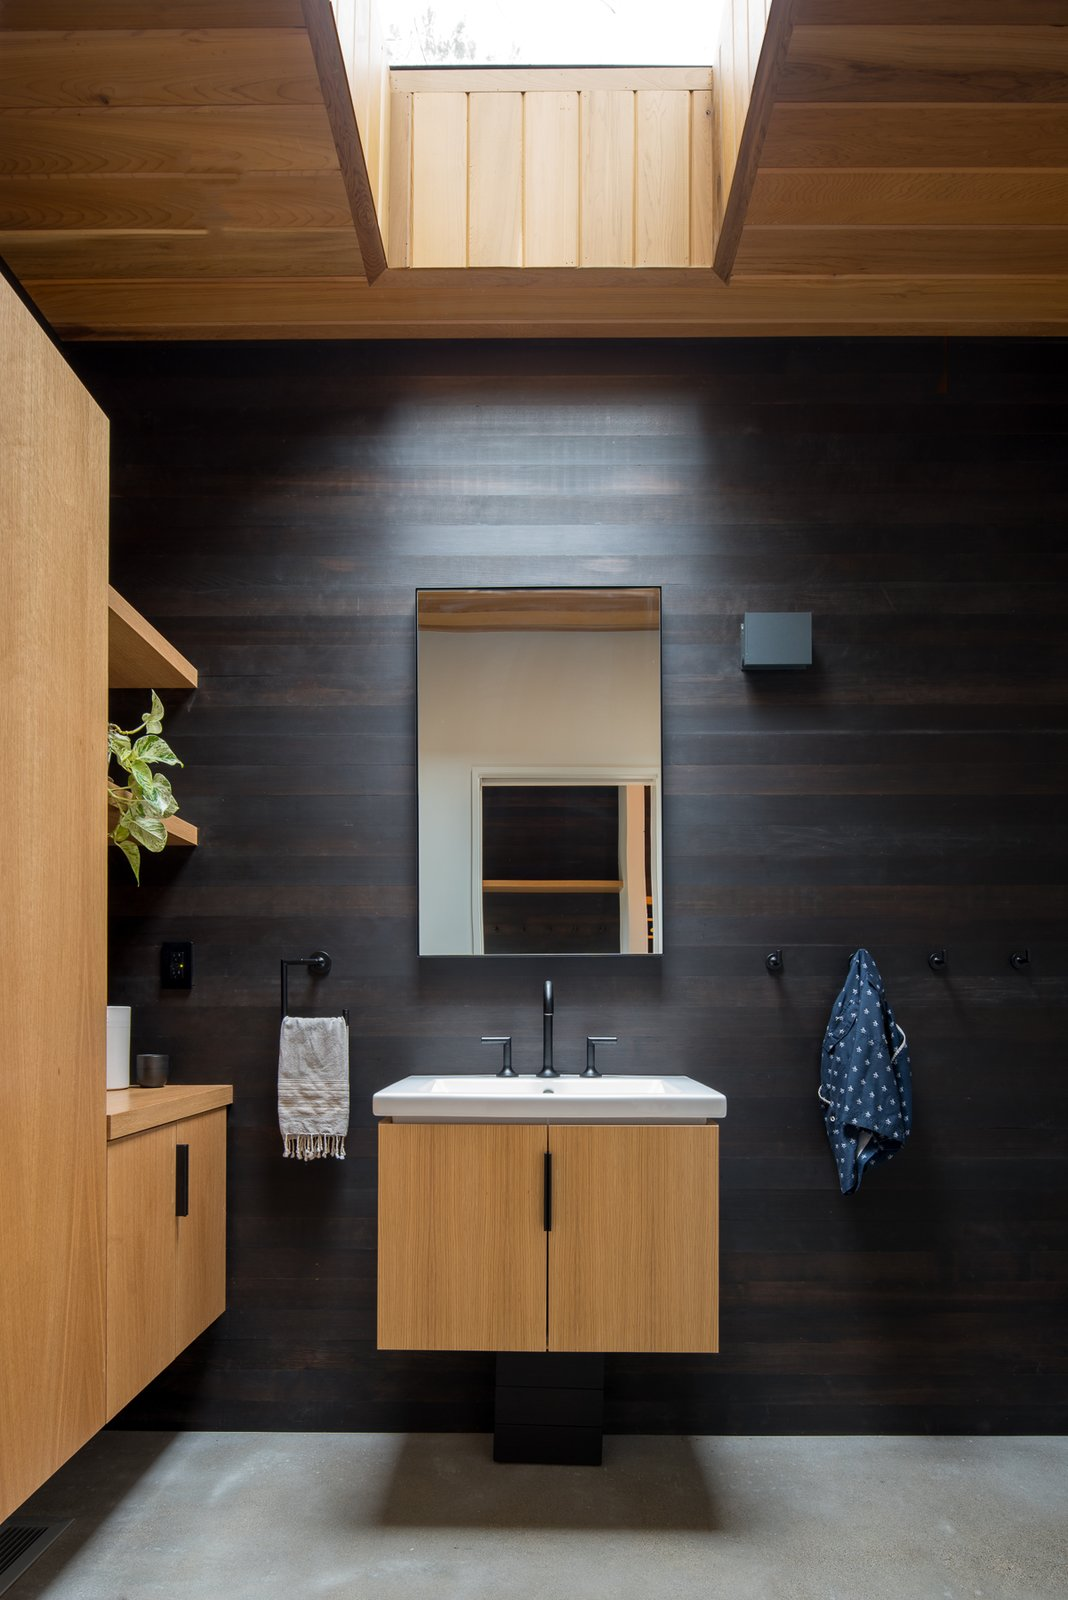 Bath Room, Wood Counter, Concrete Floor, Wall Mount Sink, Ceiling Lighting, and Wall Lighting  Northern Lake Home by Strand Design